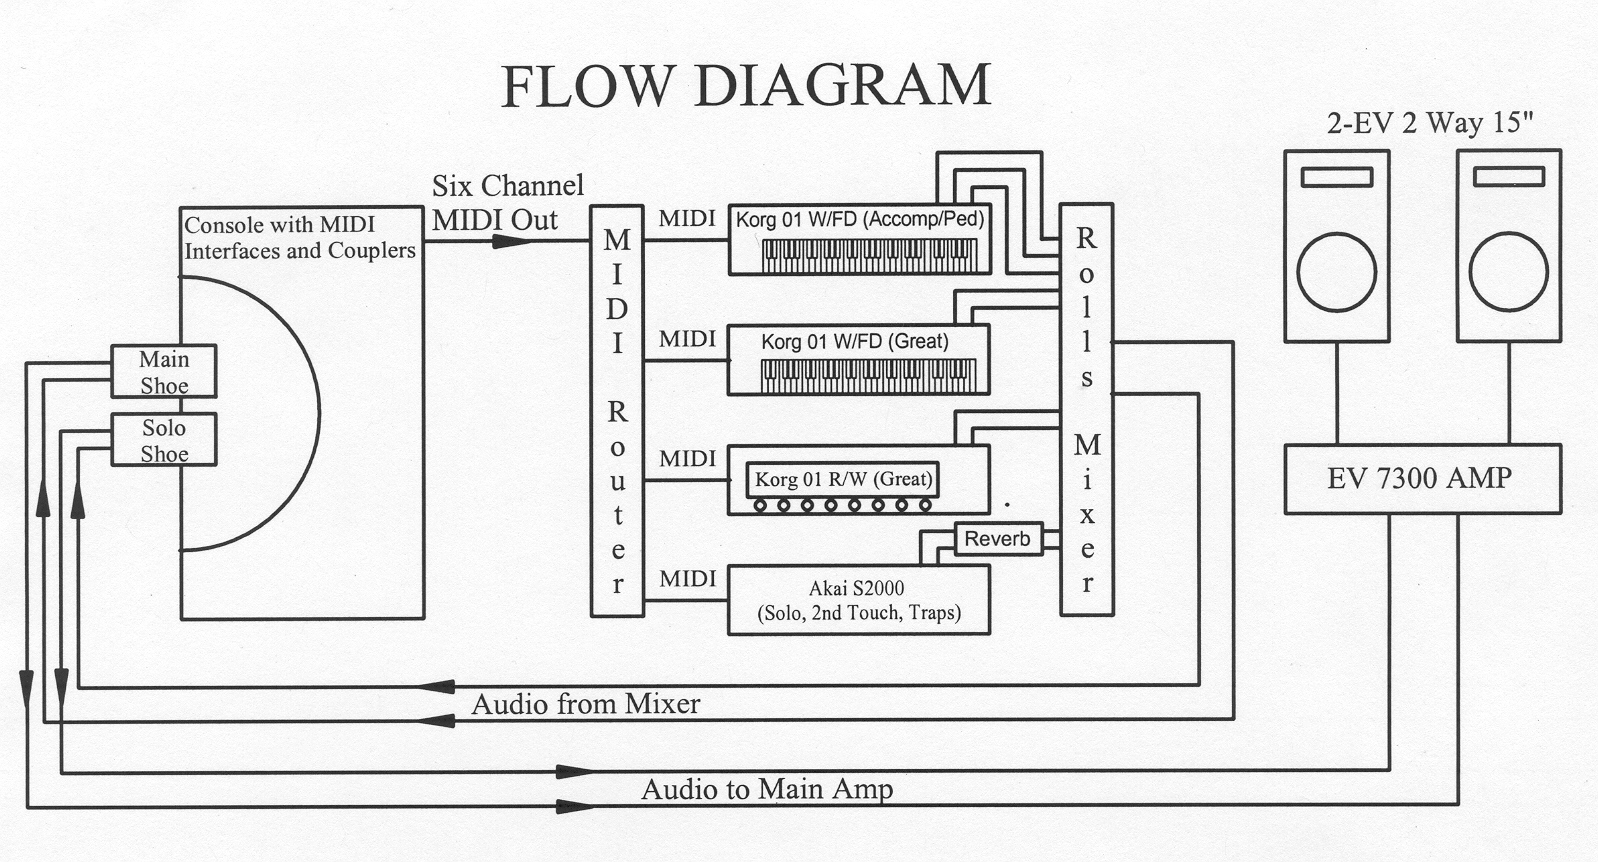 Circuitry As A Way To Simplify The Wiring And Mount Few Loose Components Systemdiagram